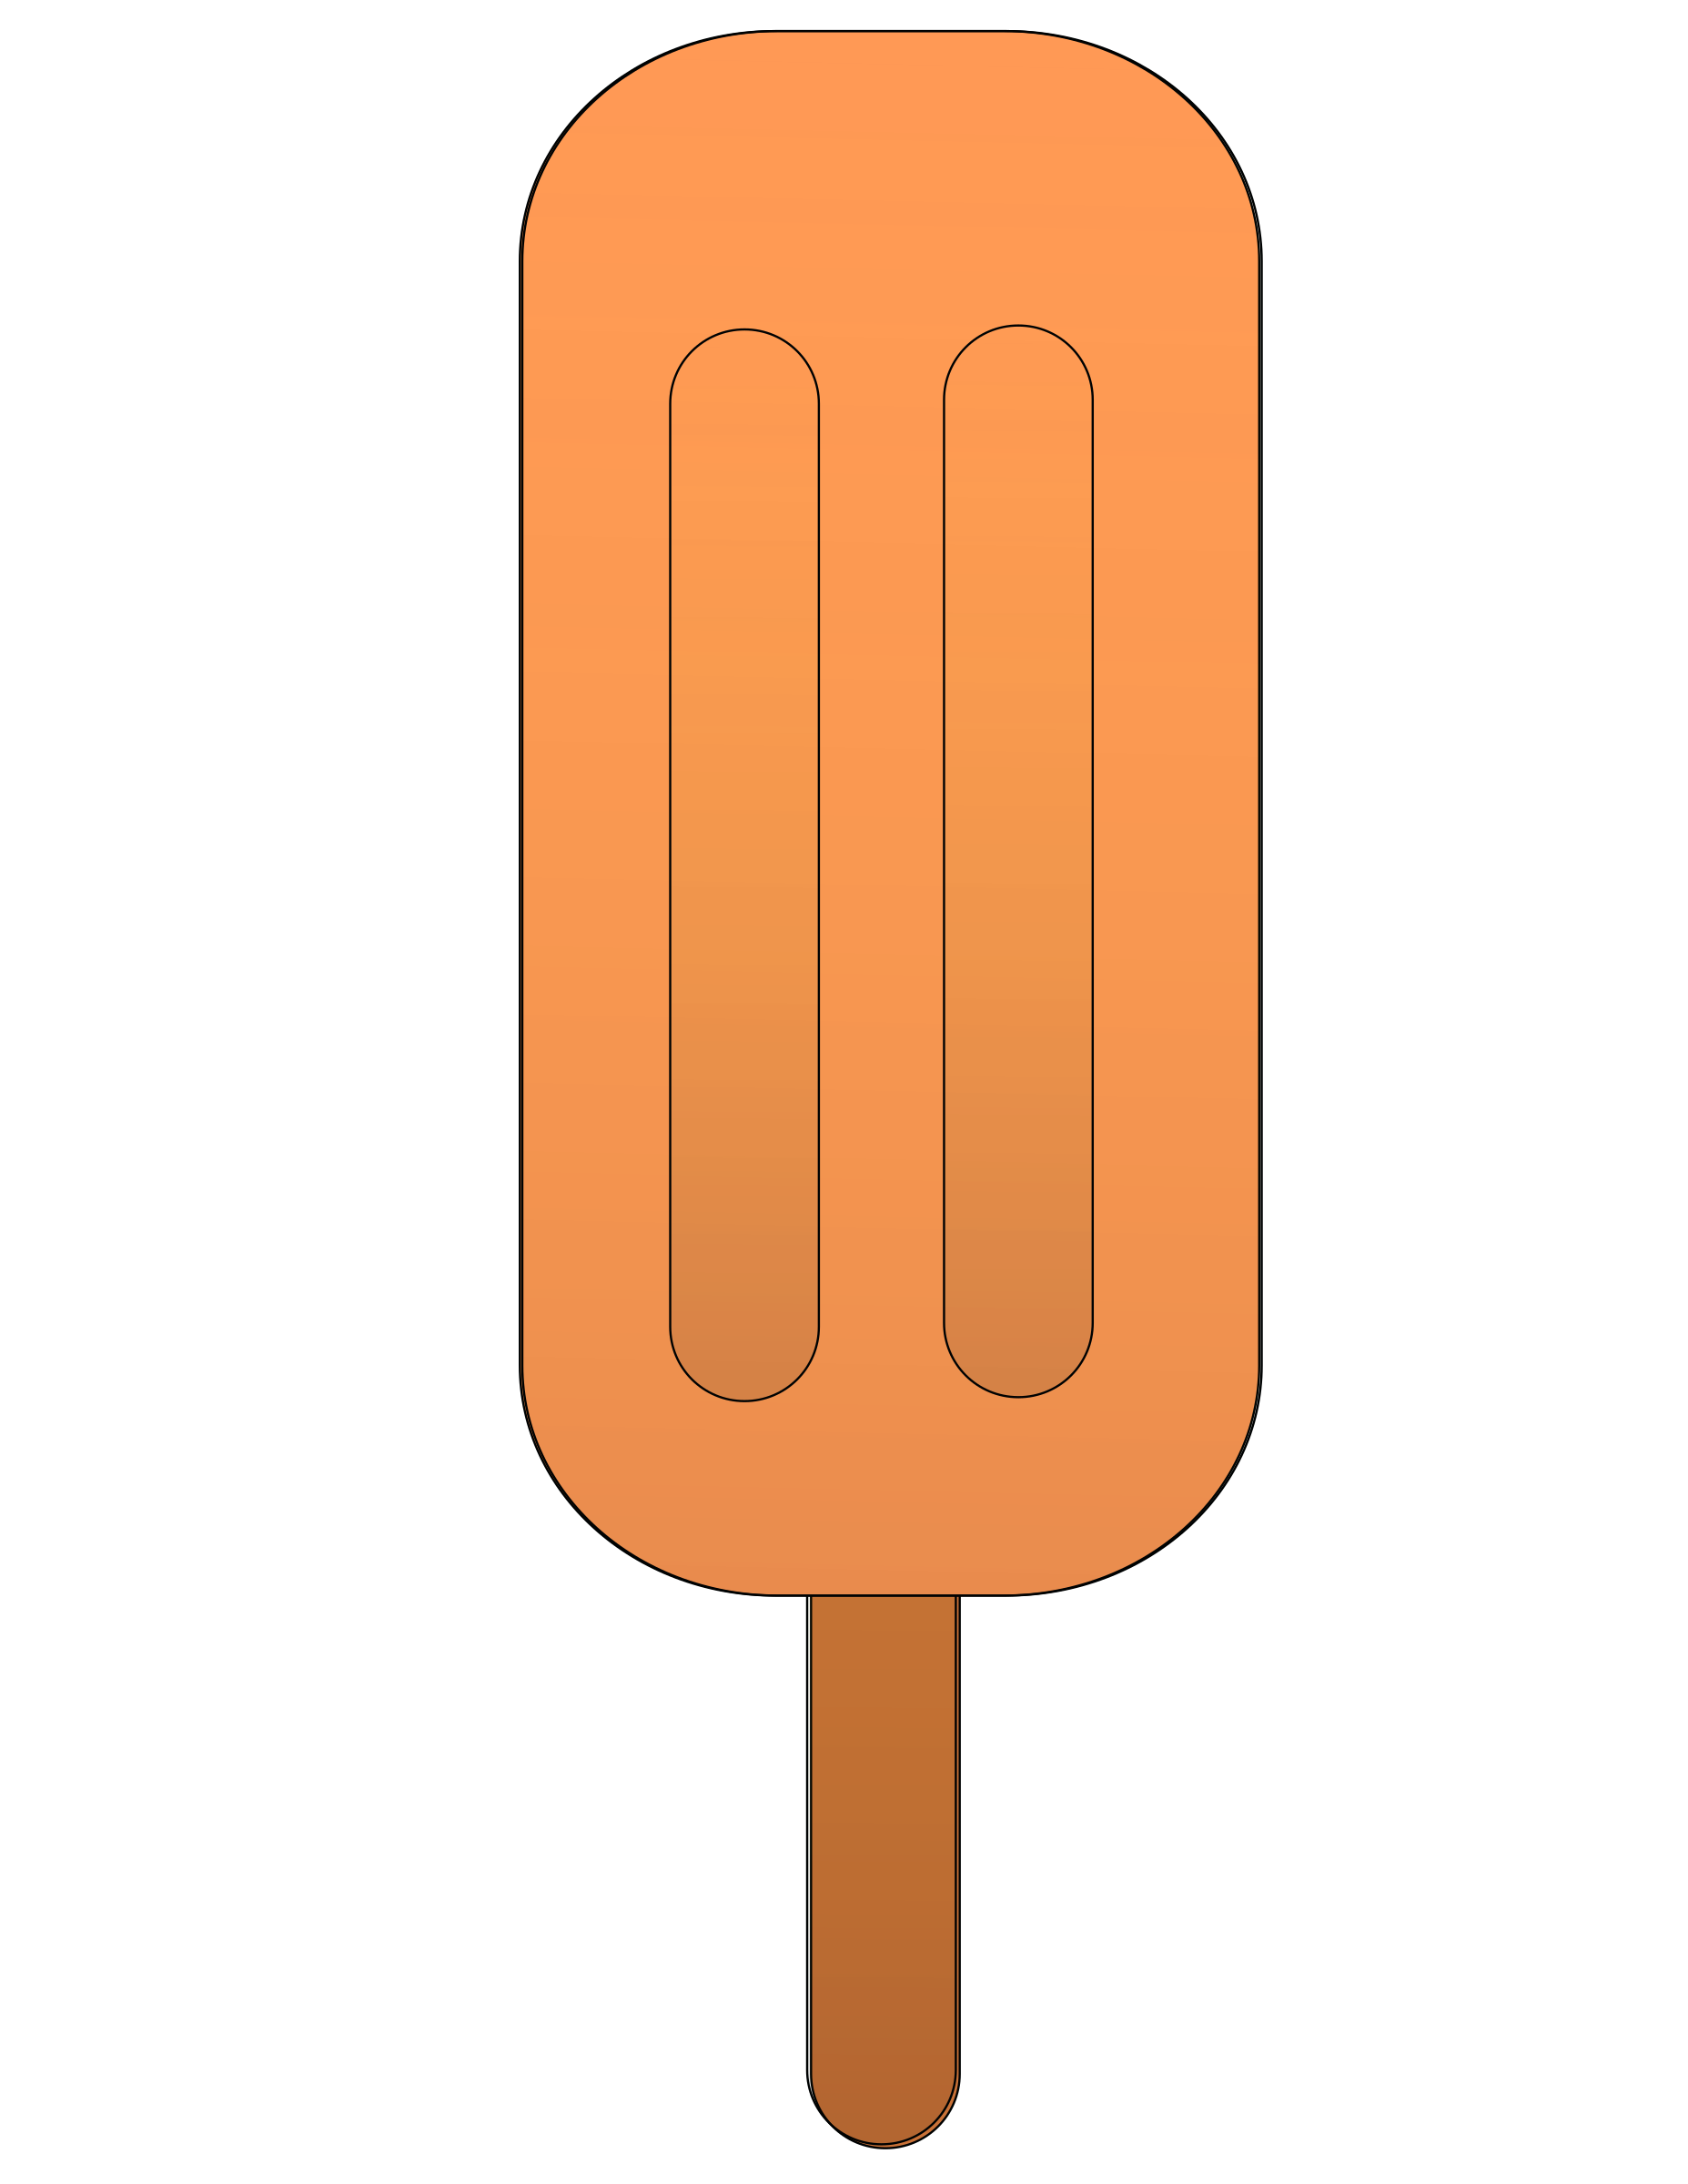 Orange popsicle. by Ehecatl1138